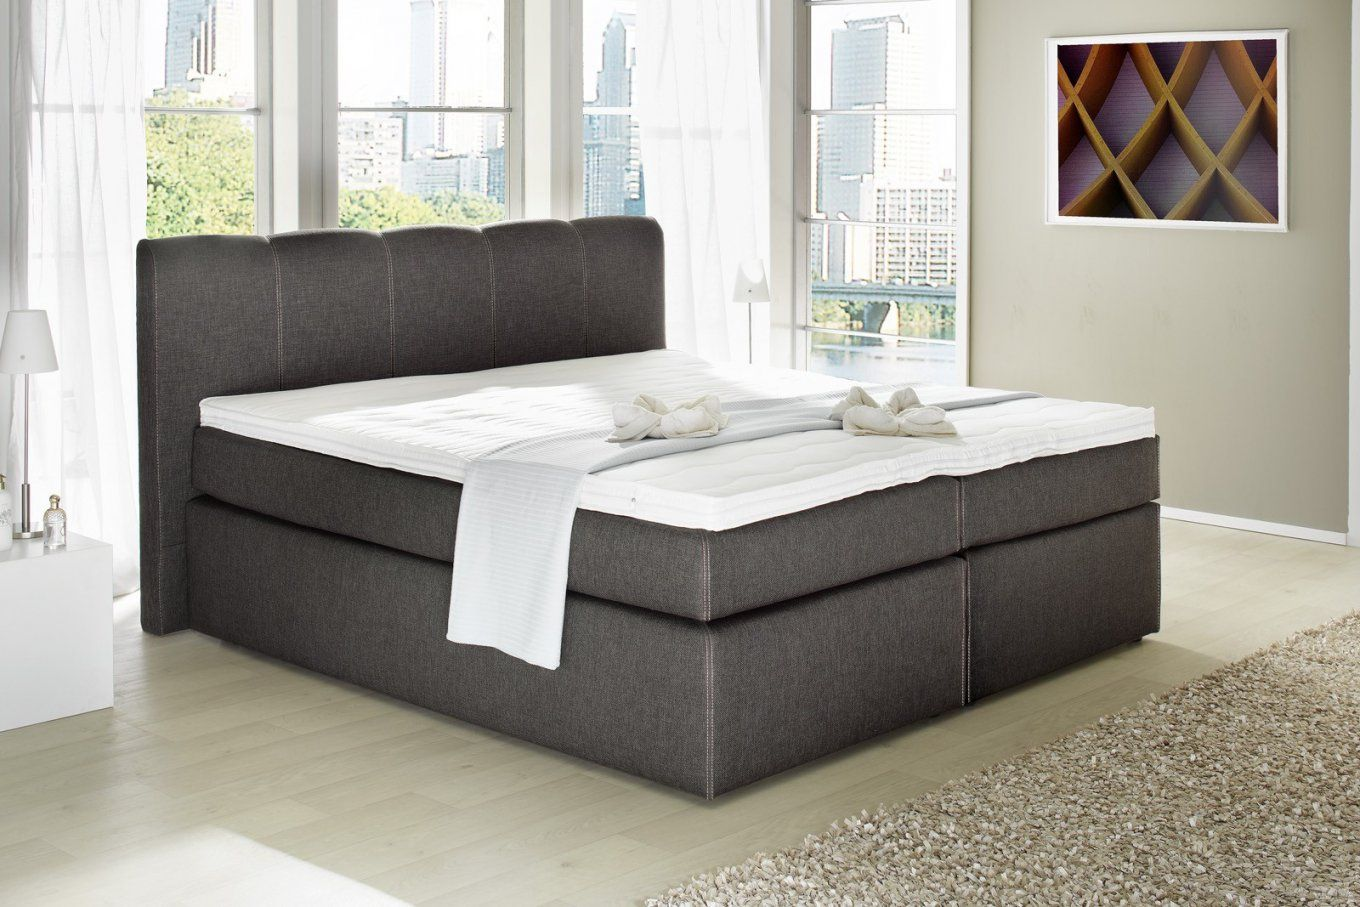 Harde Topper Boxspring Best Of Boxspring Bett Inkl Topper 180×200 von Boxspringbett Heaven Test Bild